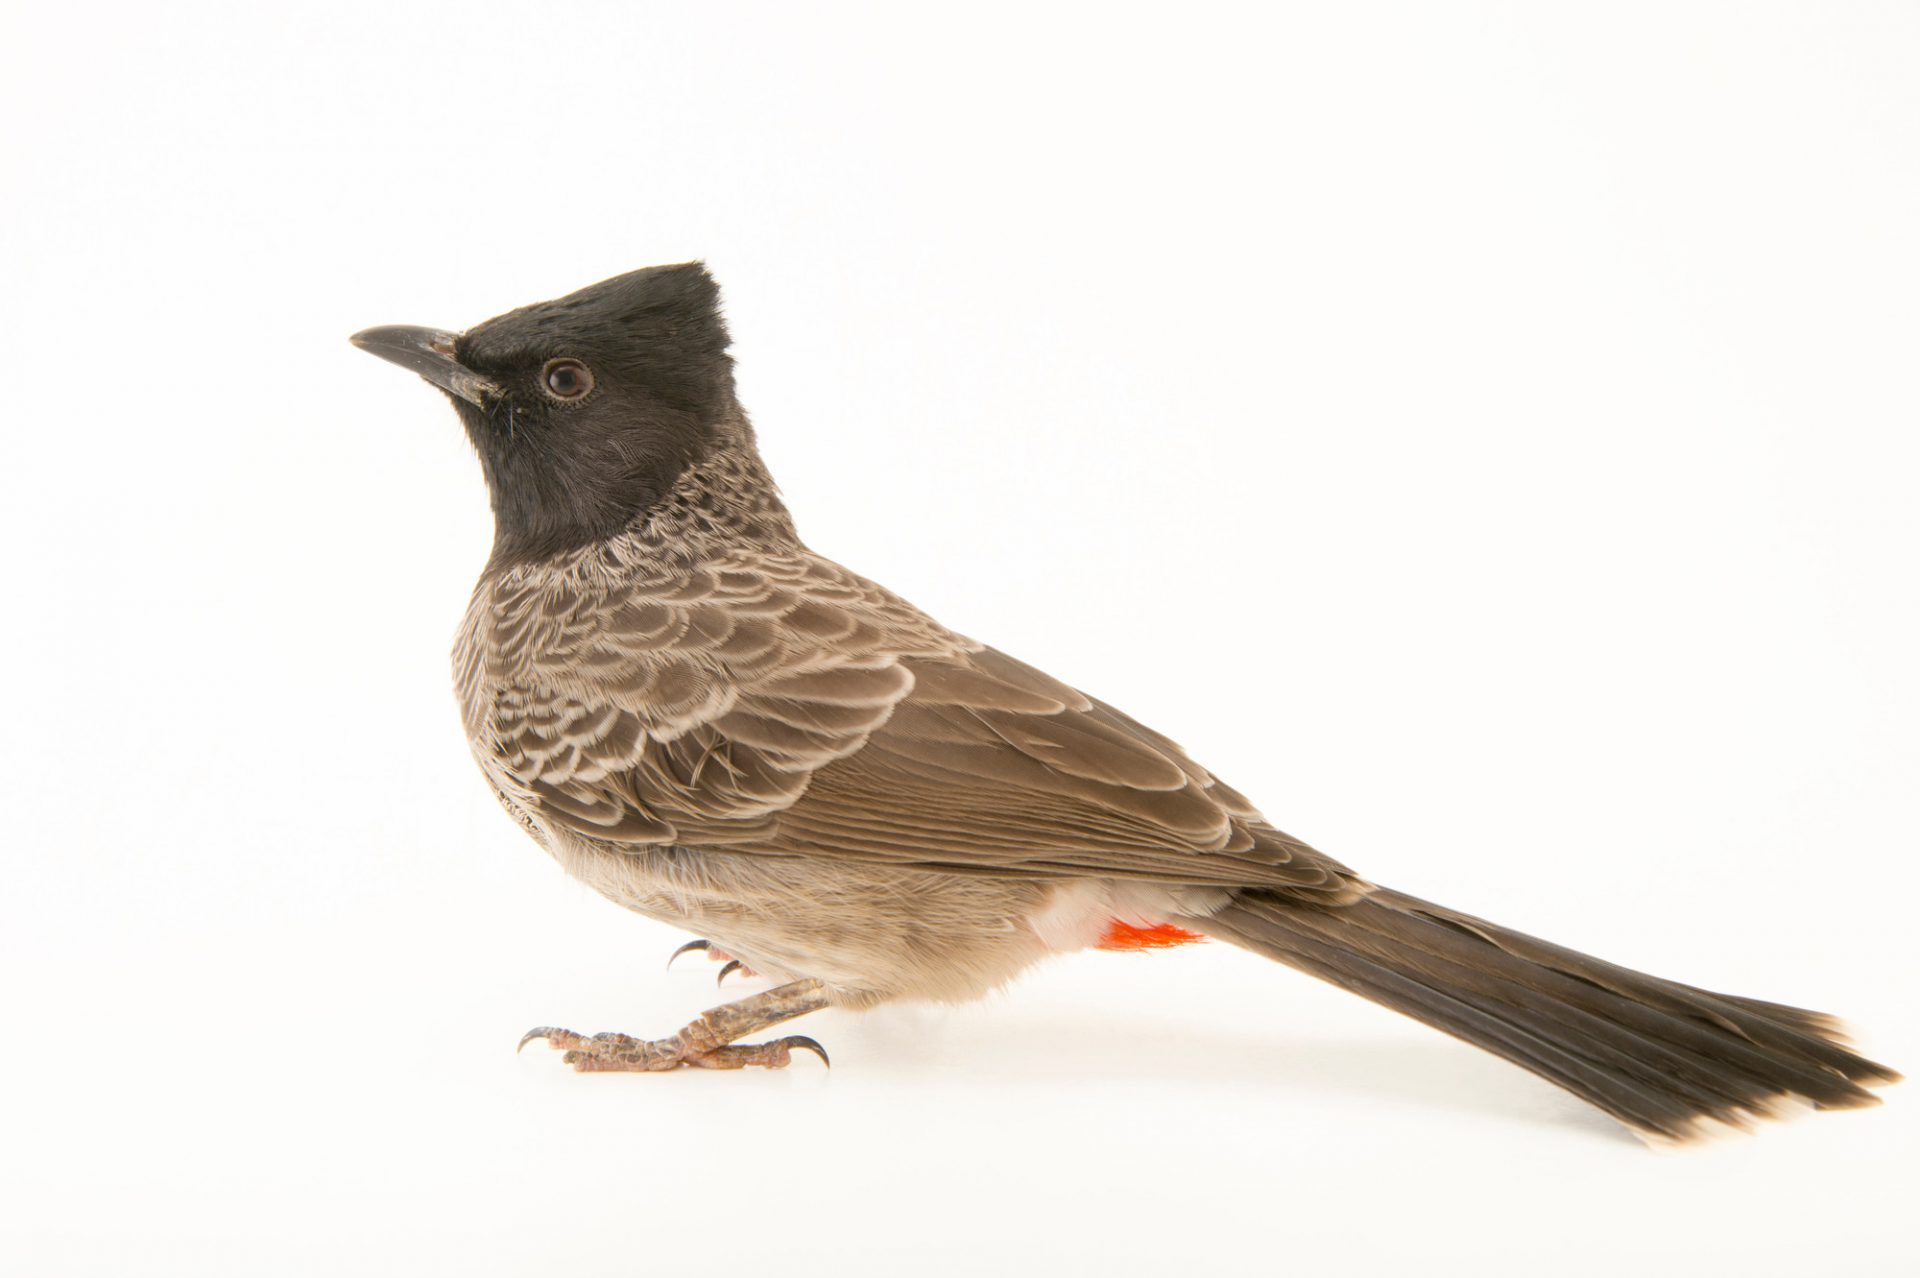 Photo: A red vented bulbul (Pycnonotus cafer) at the Plzen Zoo in the Czech Republic.